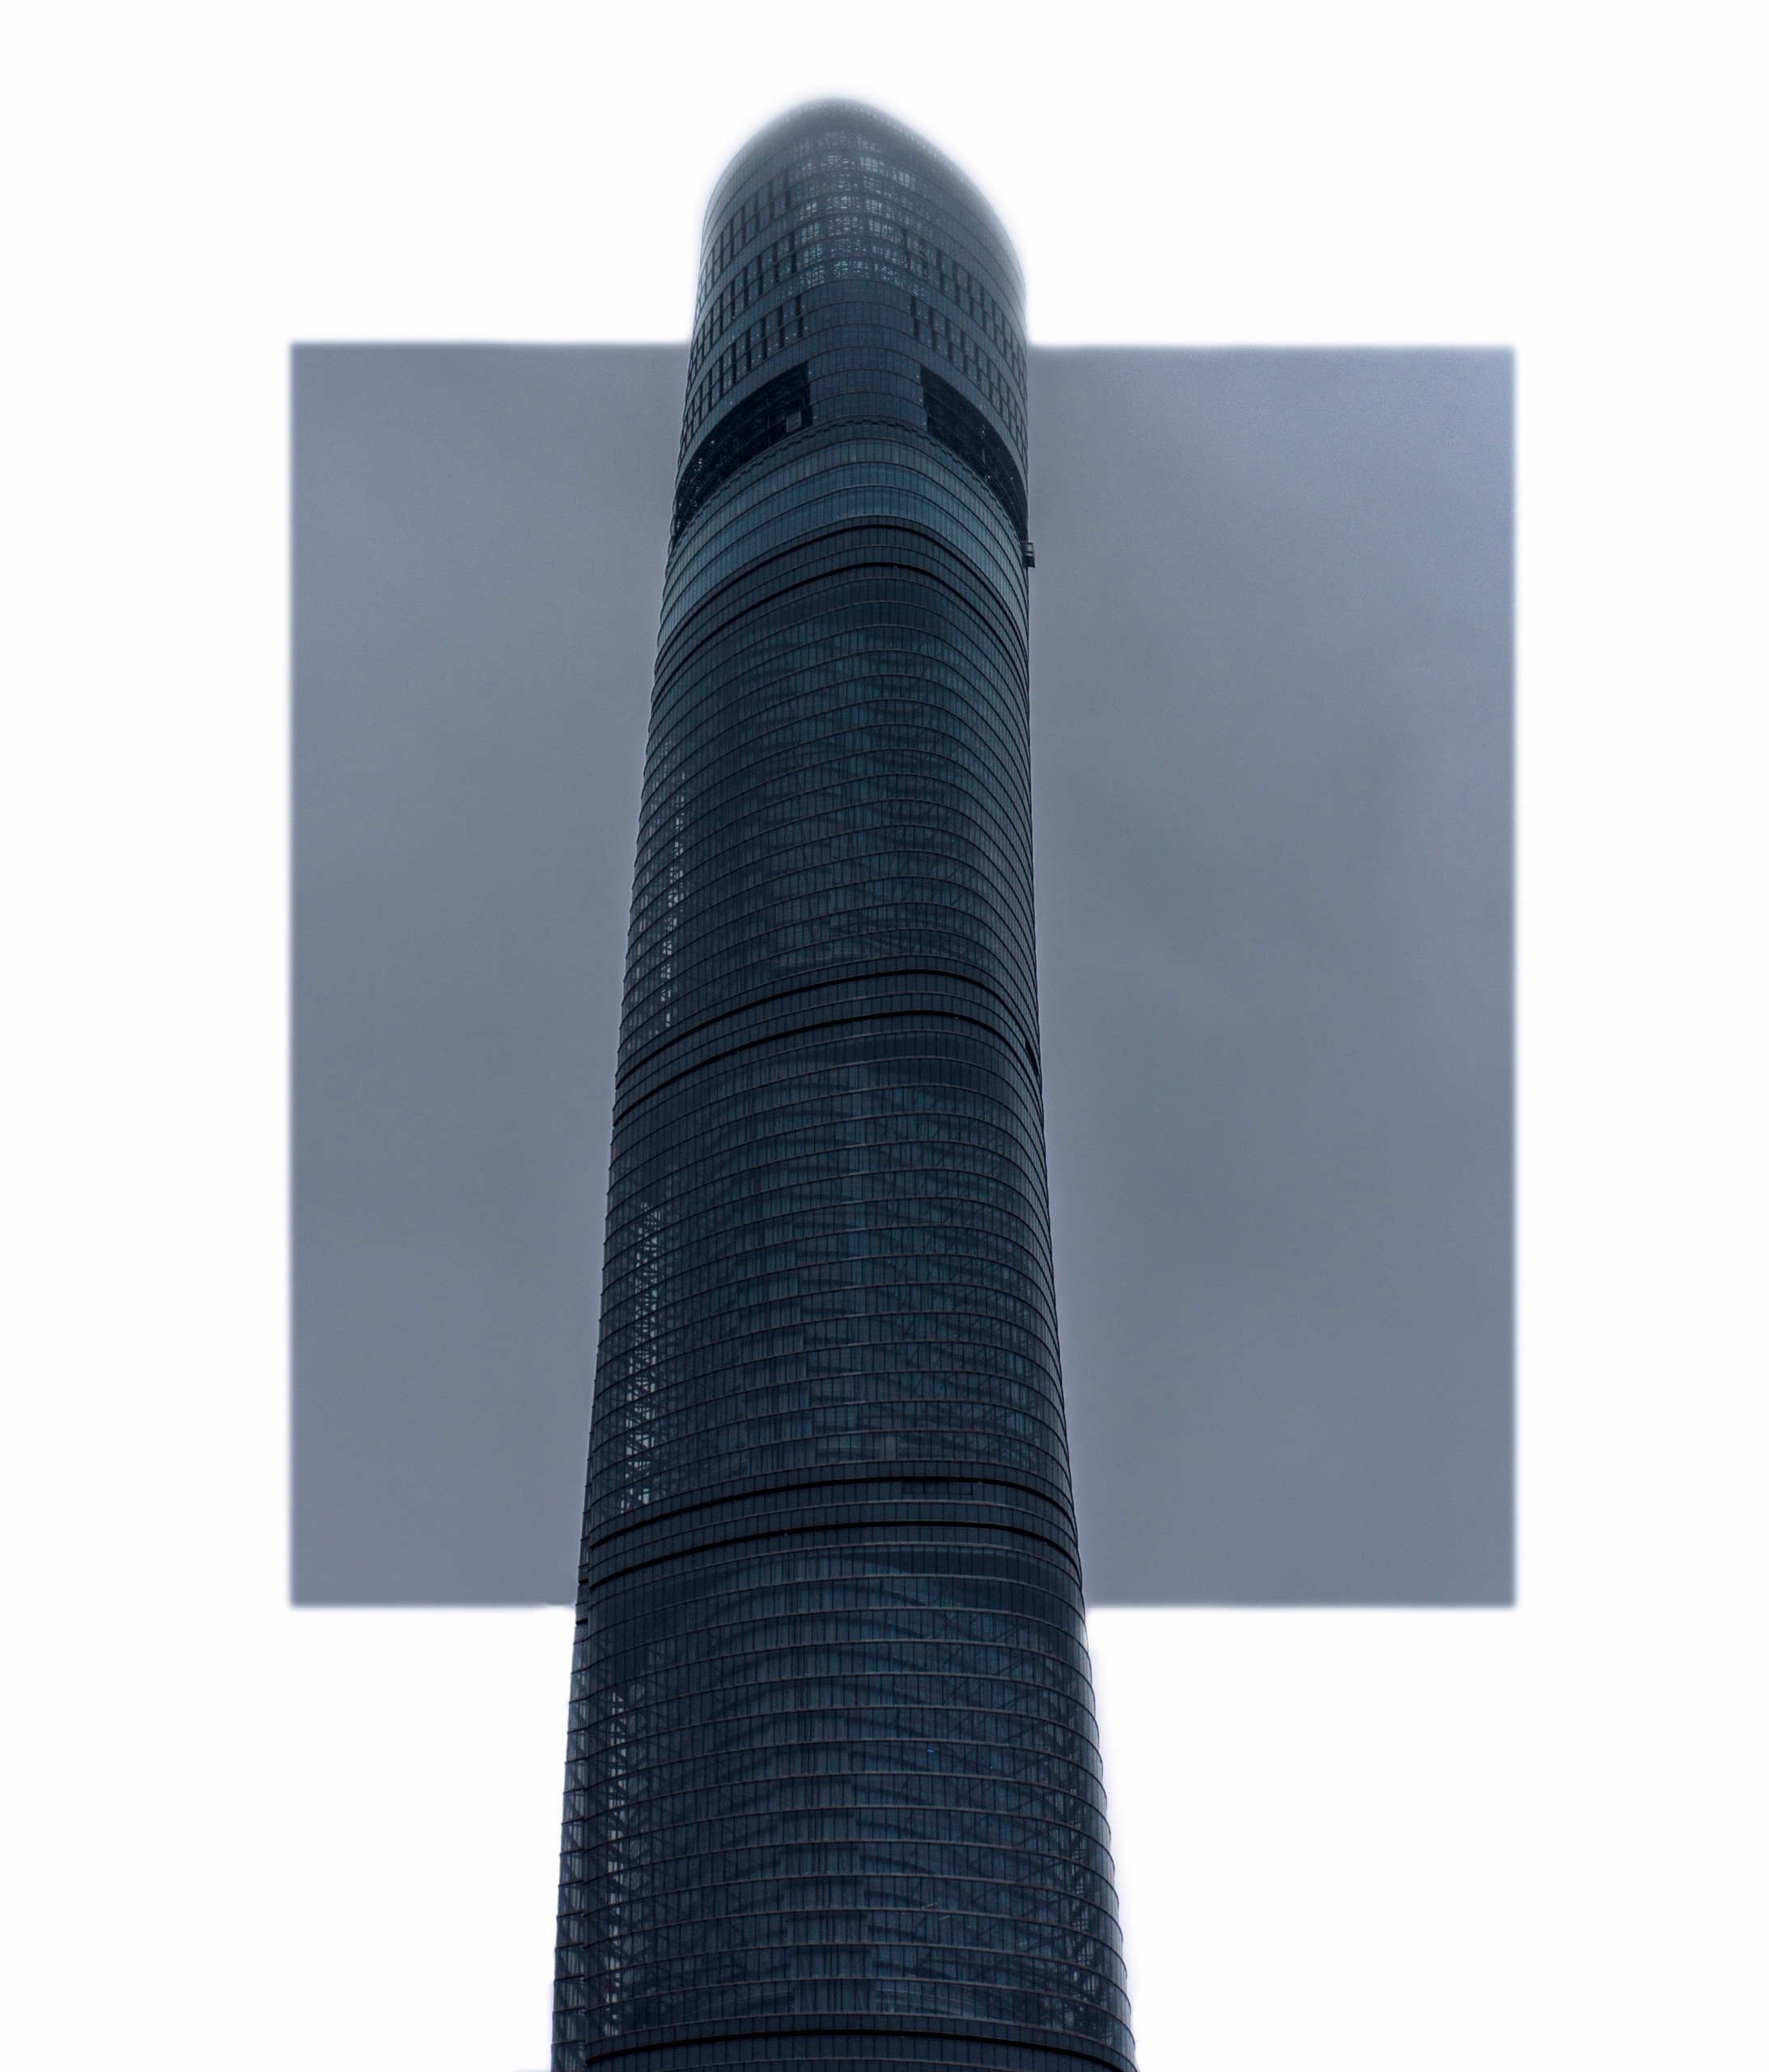 Shanghai Tower, Pudong District - notabene | ello